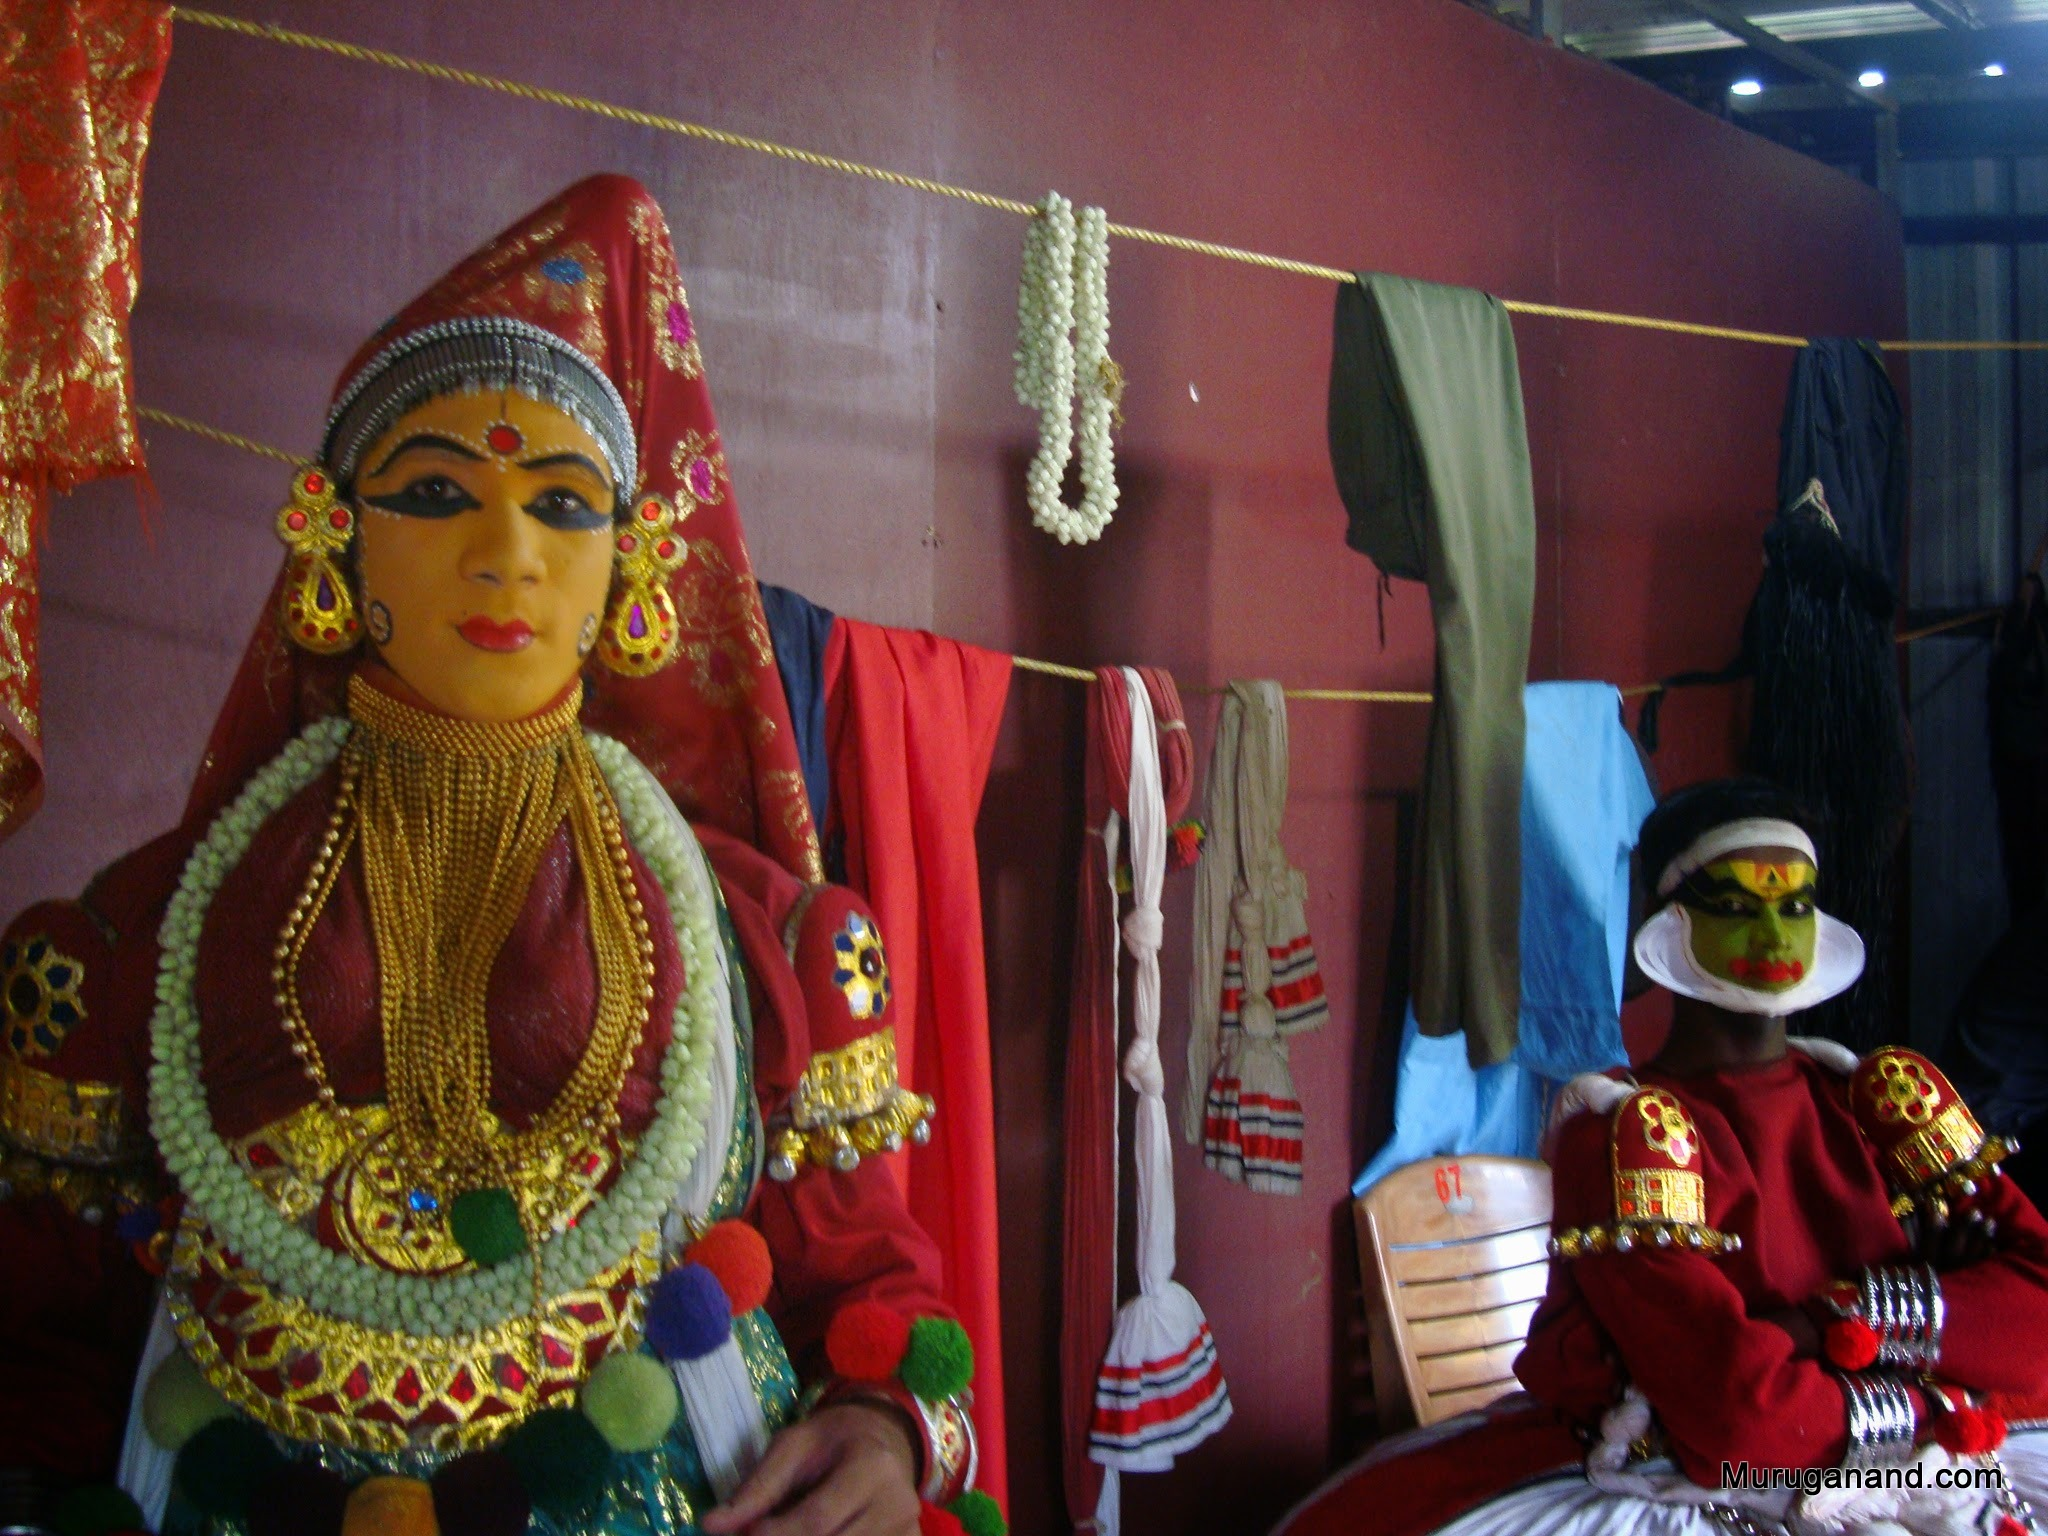 Kathakali (all male dance)- cultural show in the evening